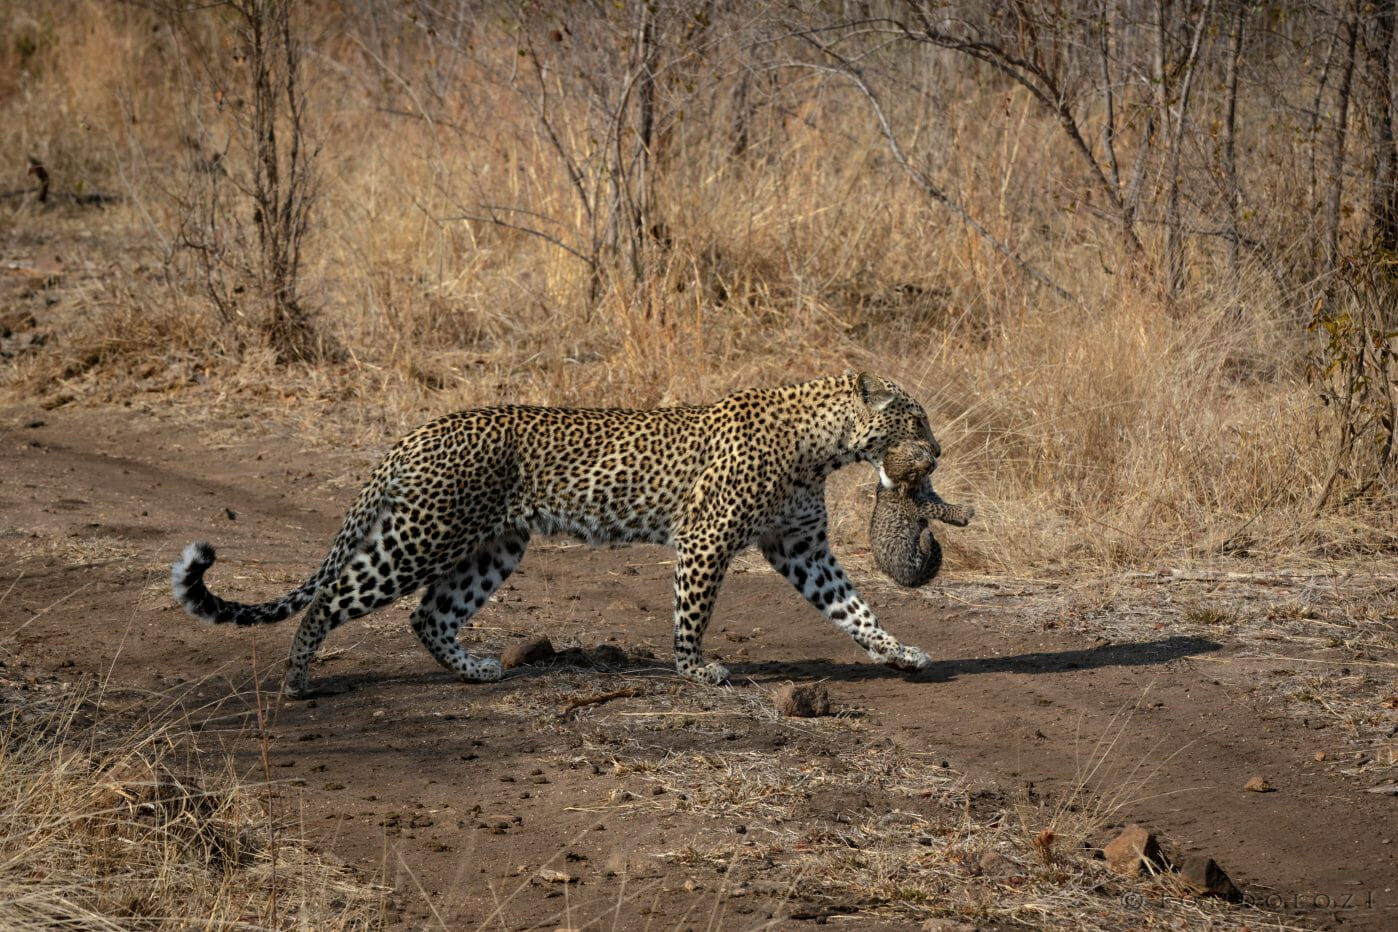 Makomsava Female Carrying Cub 7292